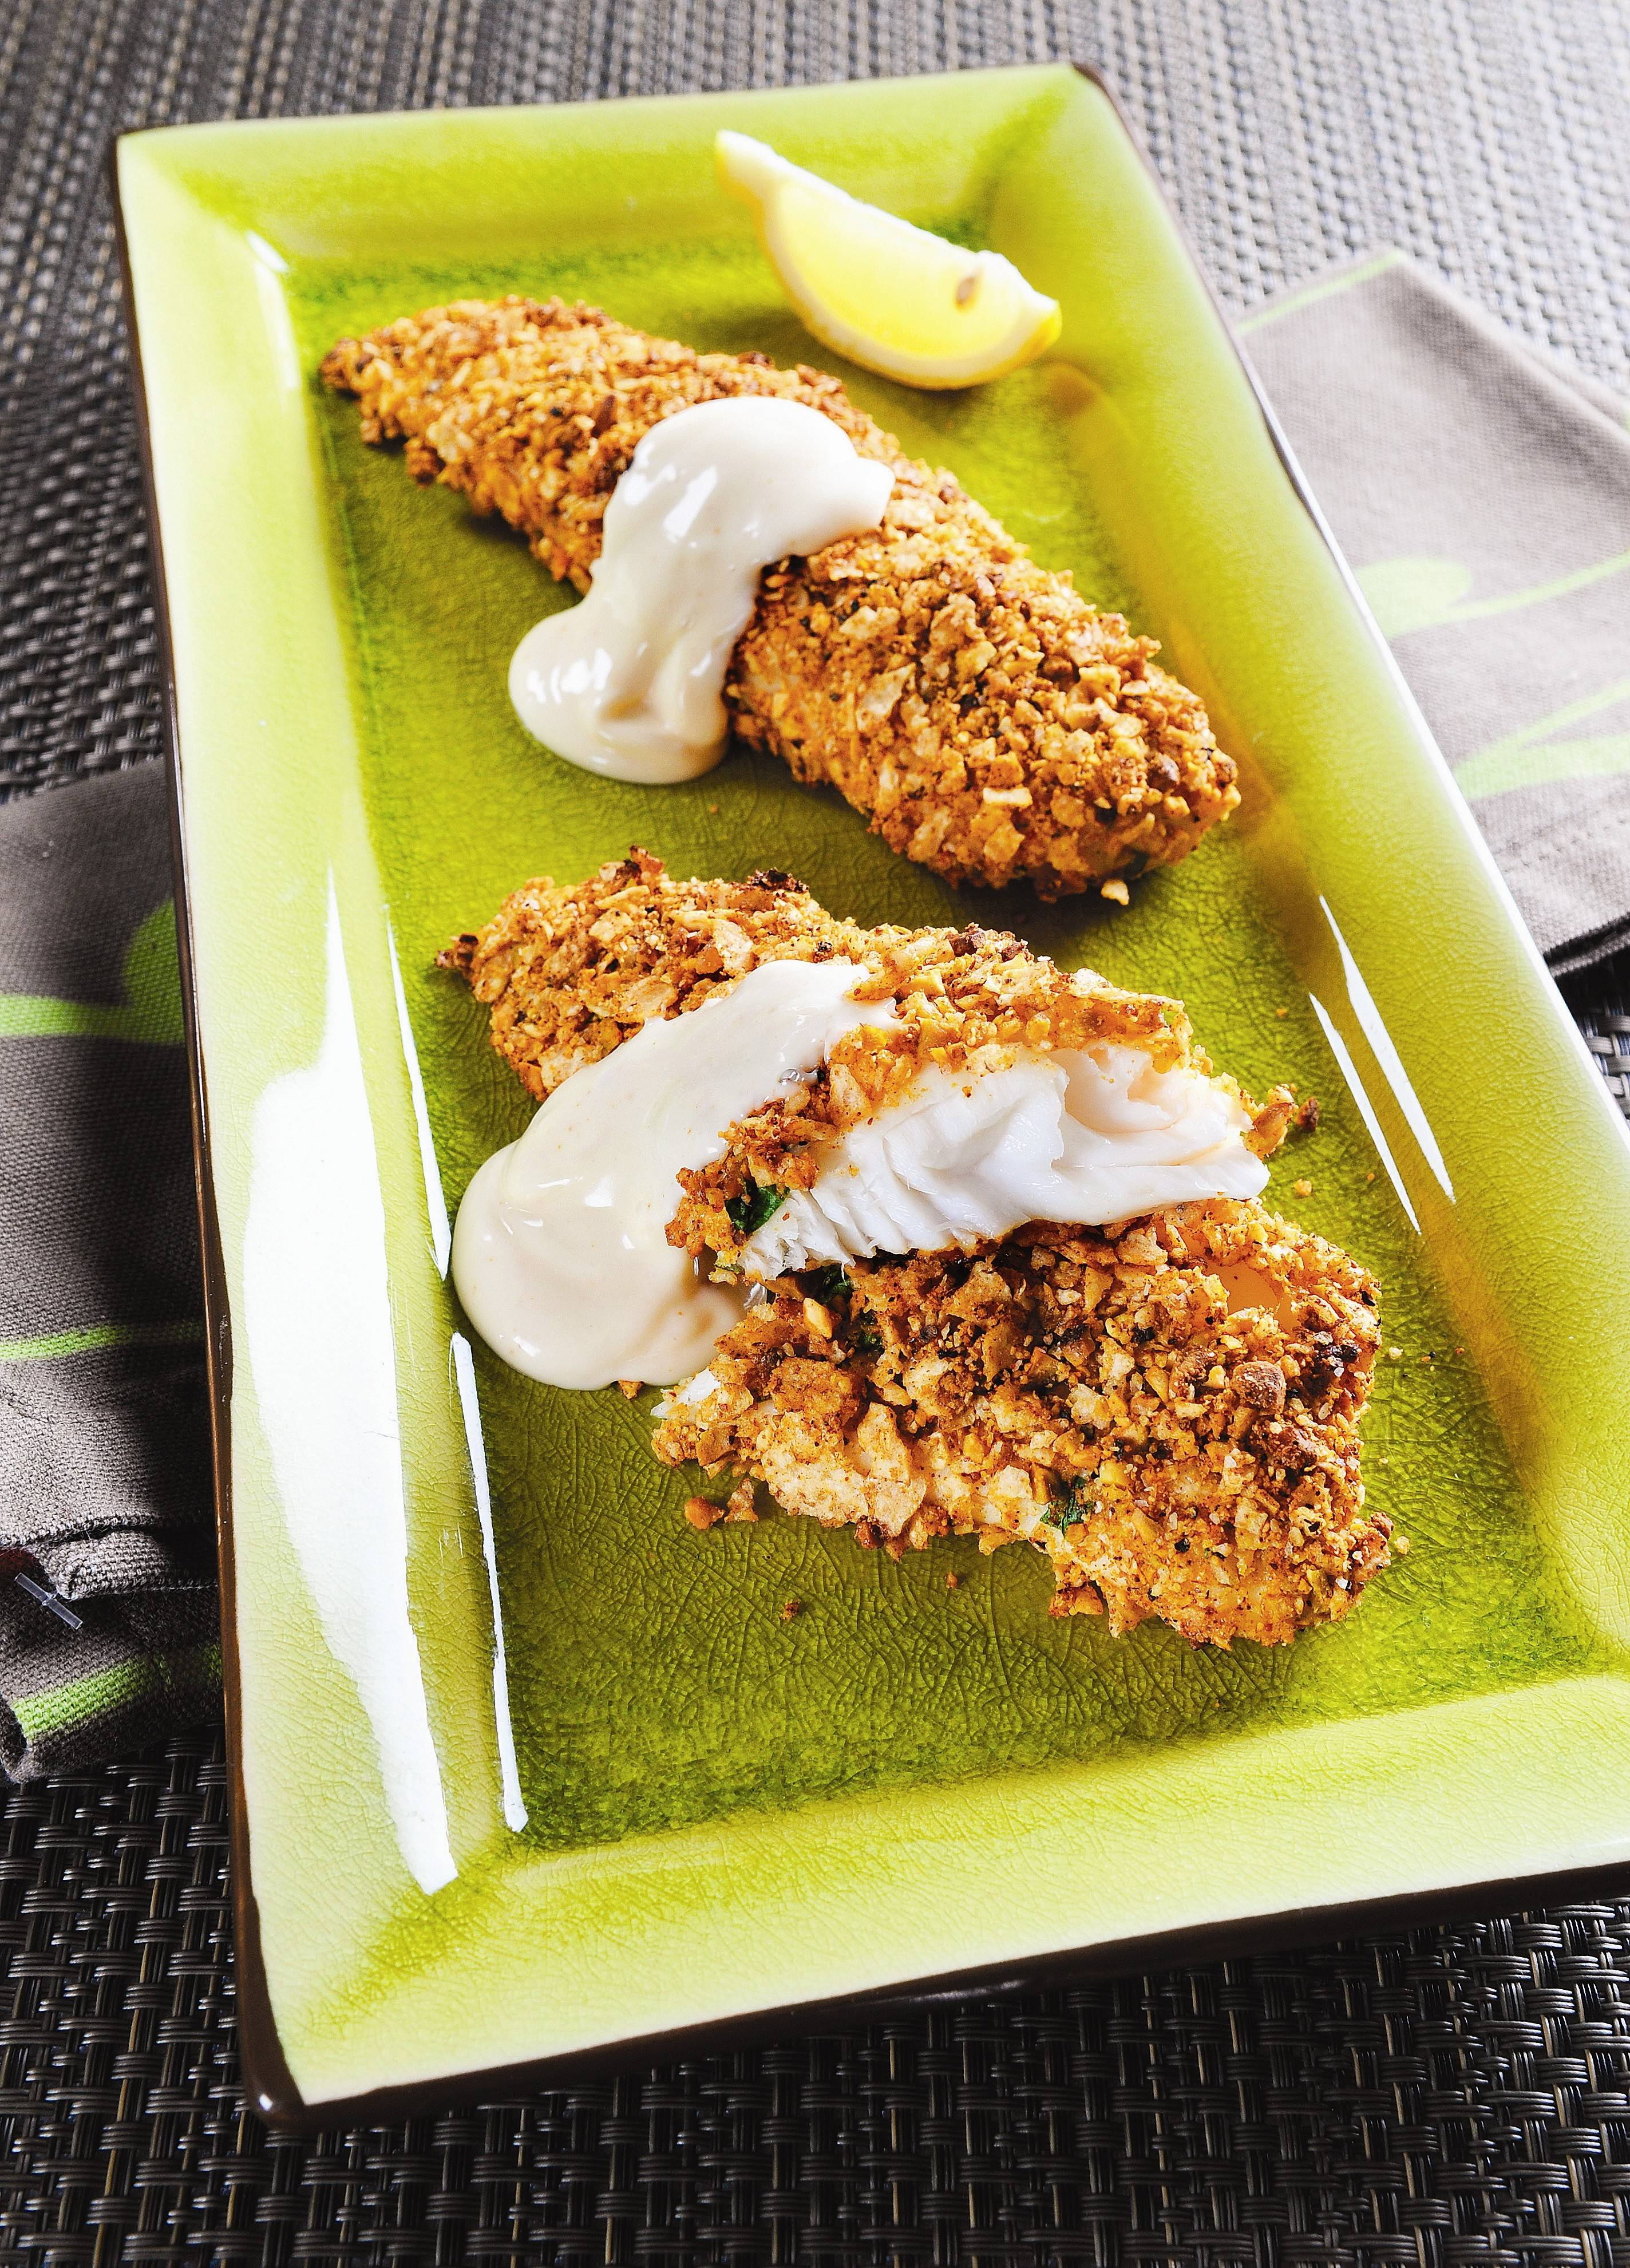 Pistachio & Whole-Grain Tortilla Crusted Tilapia with Chili Lime Sauce